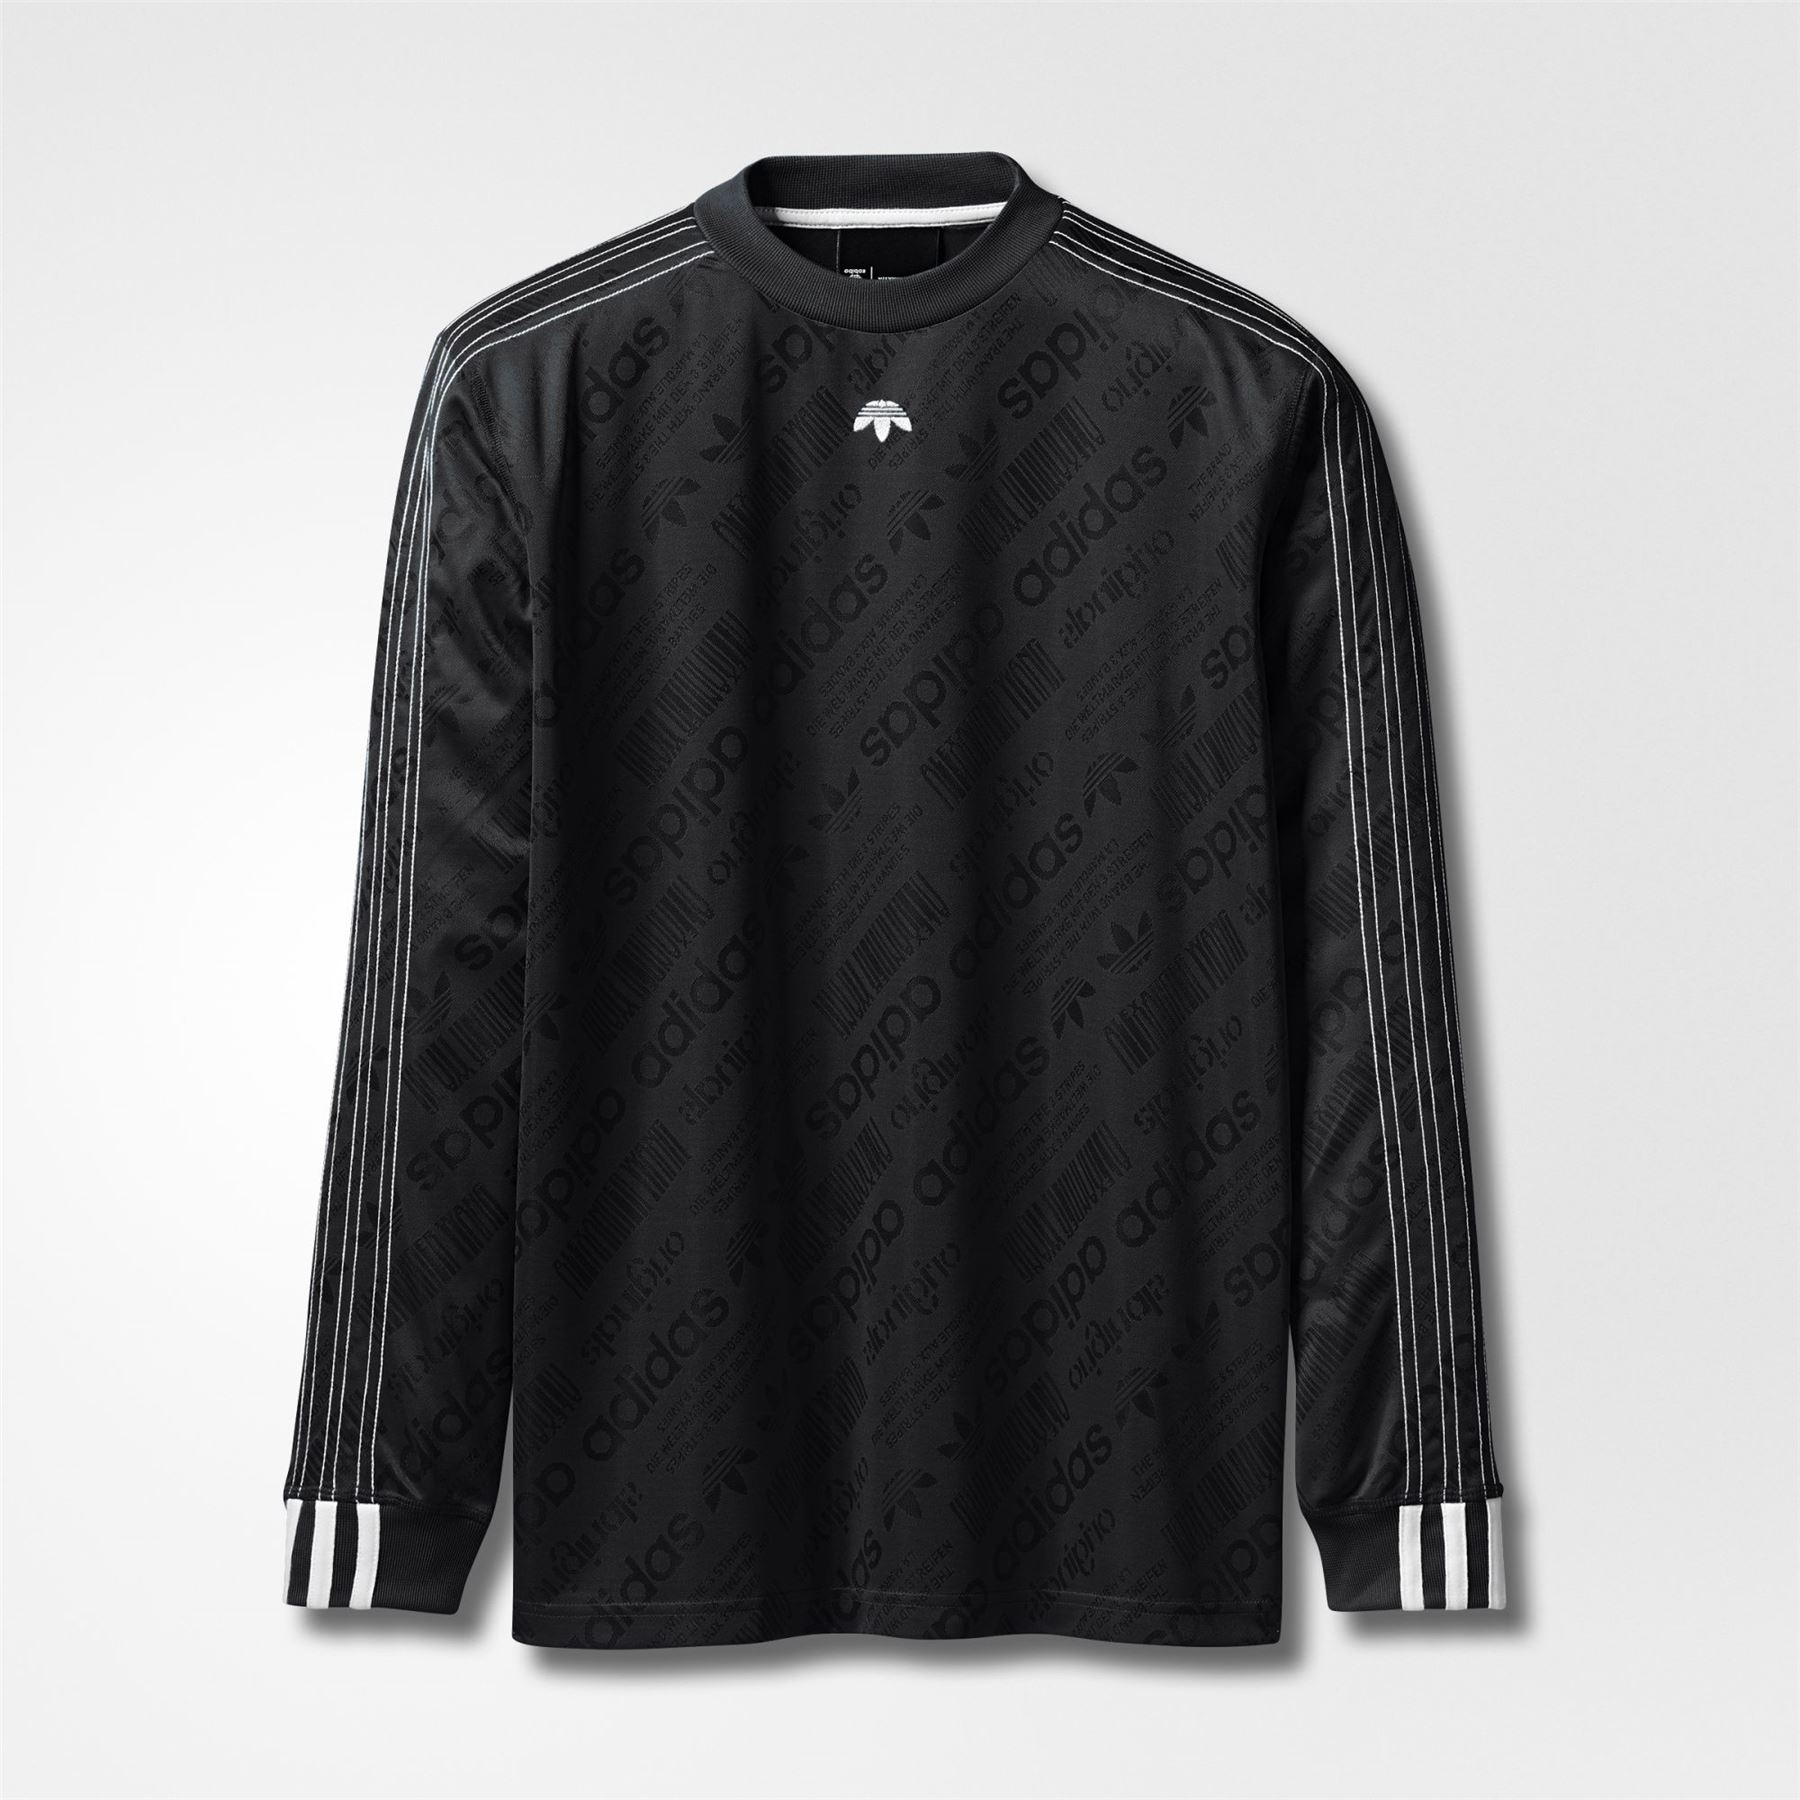 Men's Clothing Adidas Originals By Alexander Wang for Men